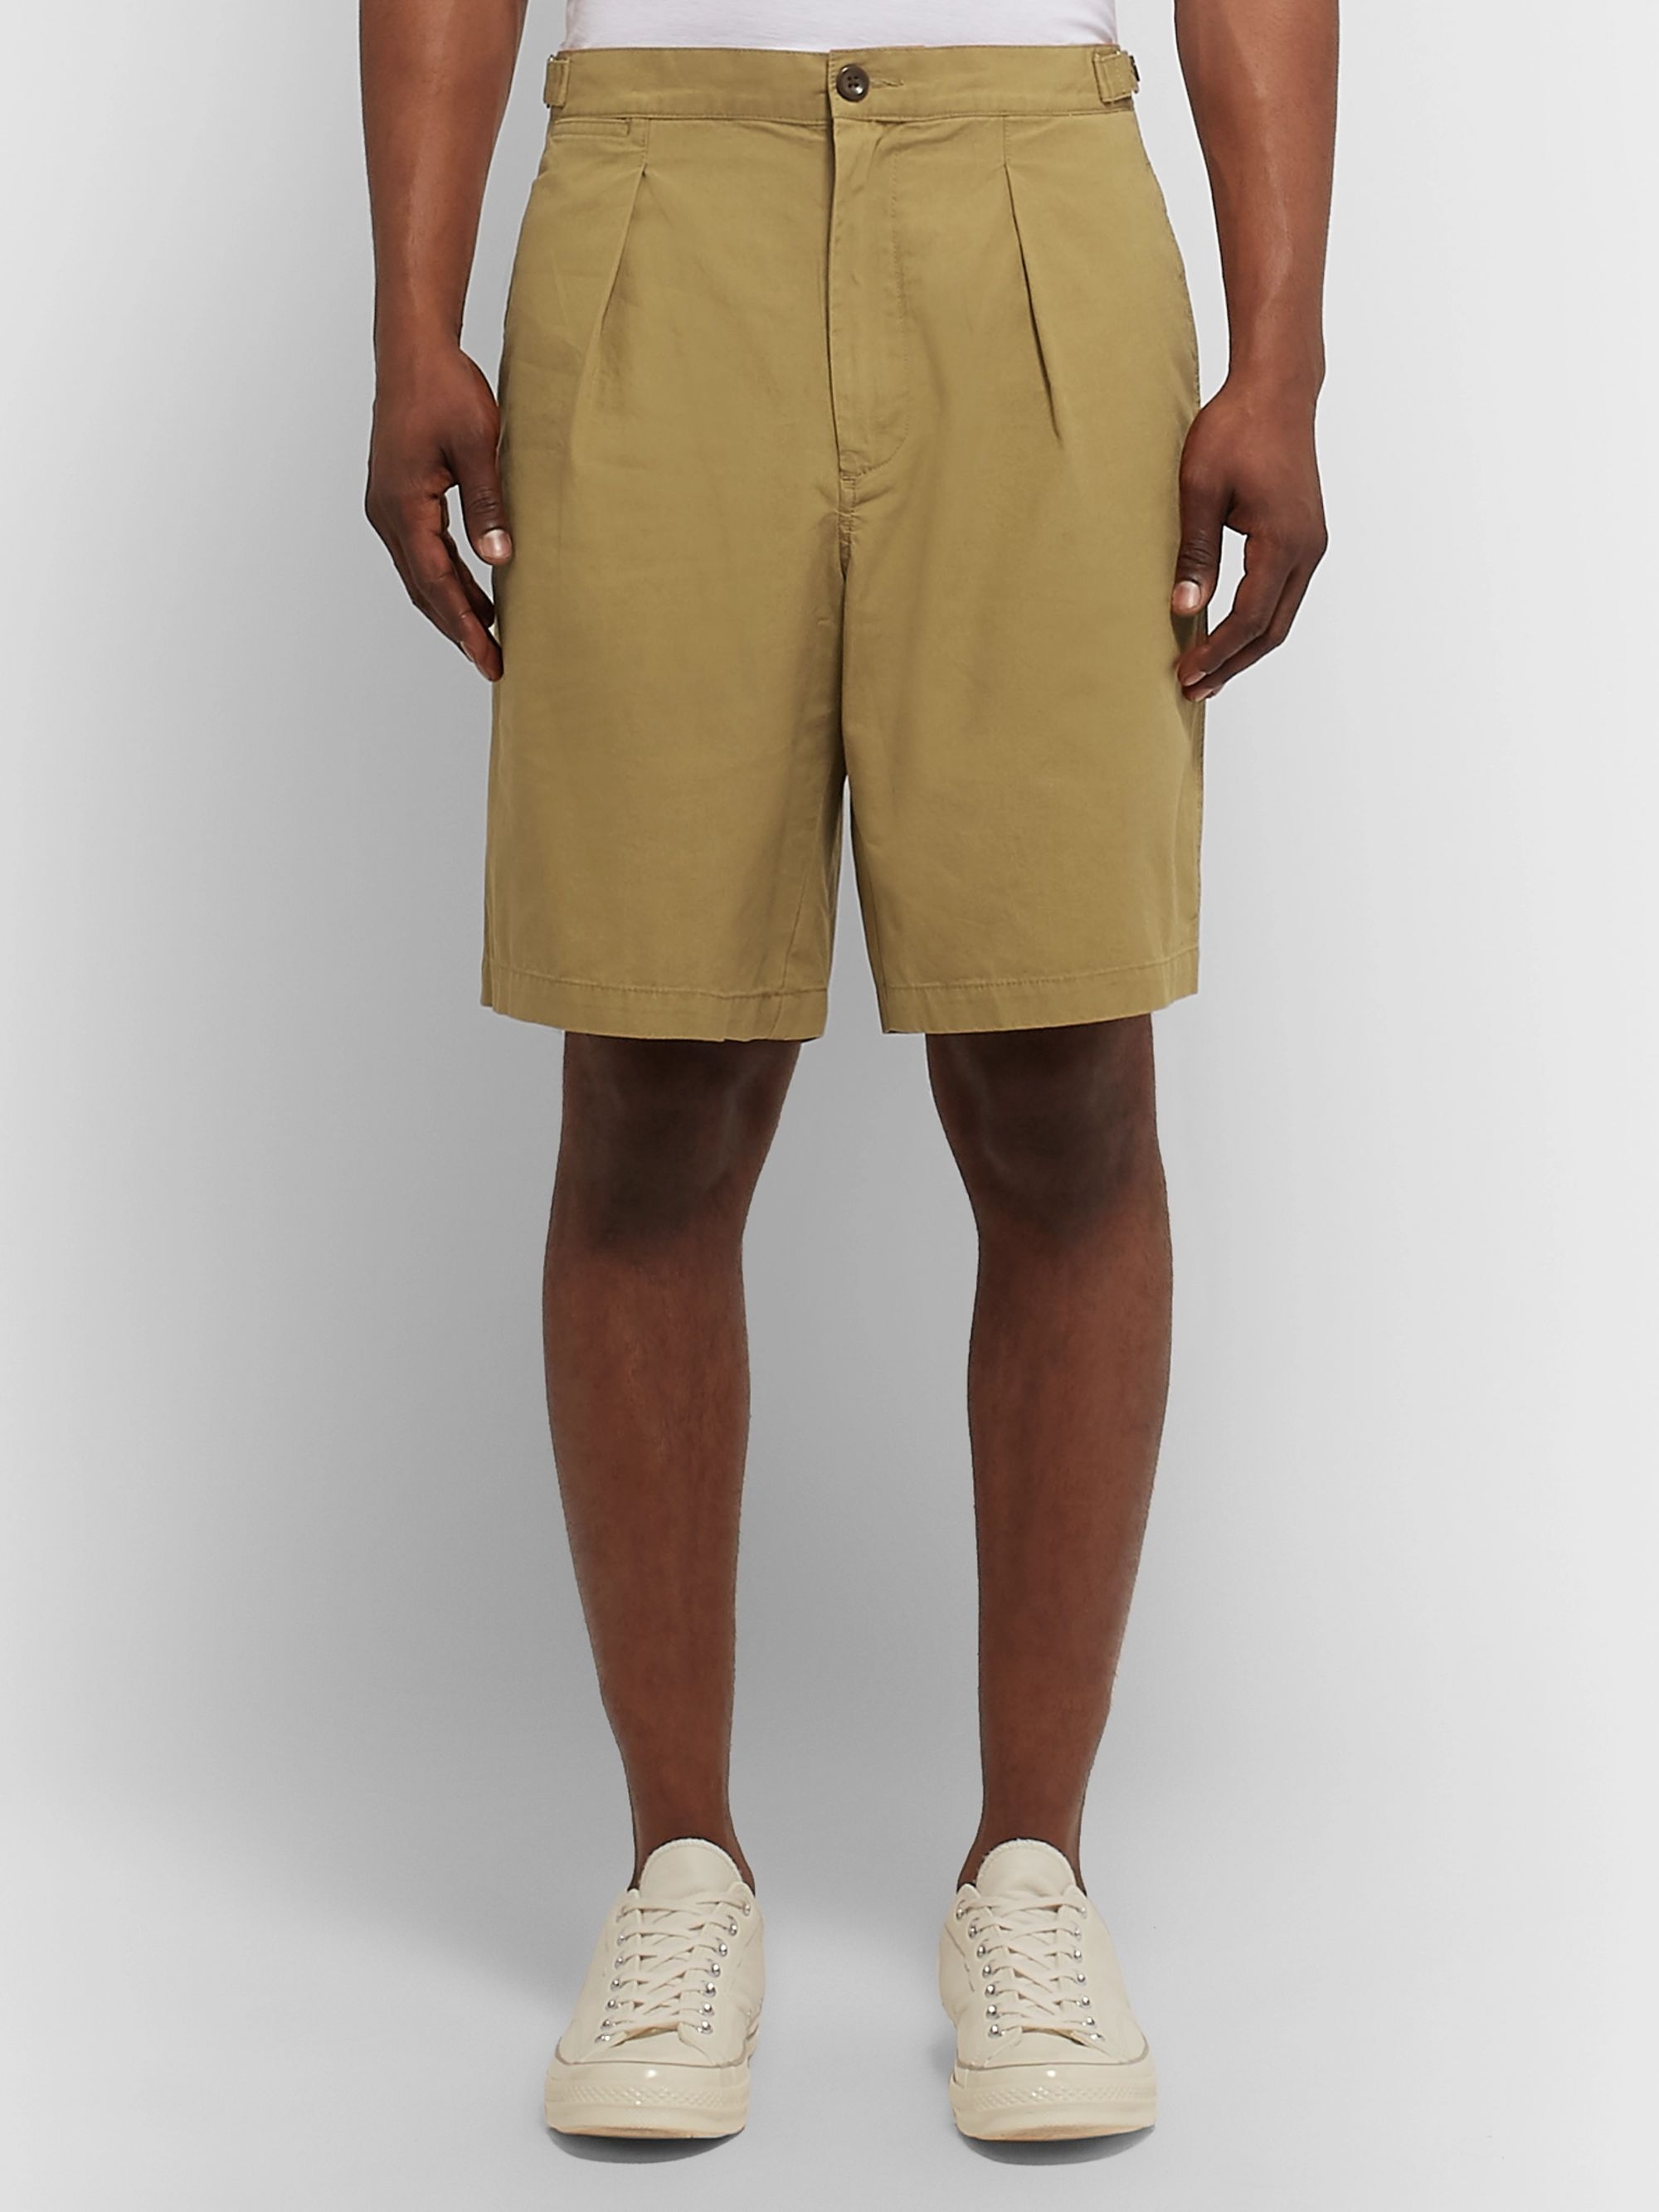 J.Crew Wallace & Barnes Pleated Cotton Shorts